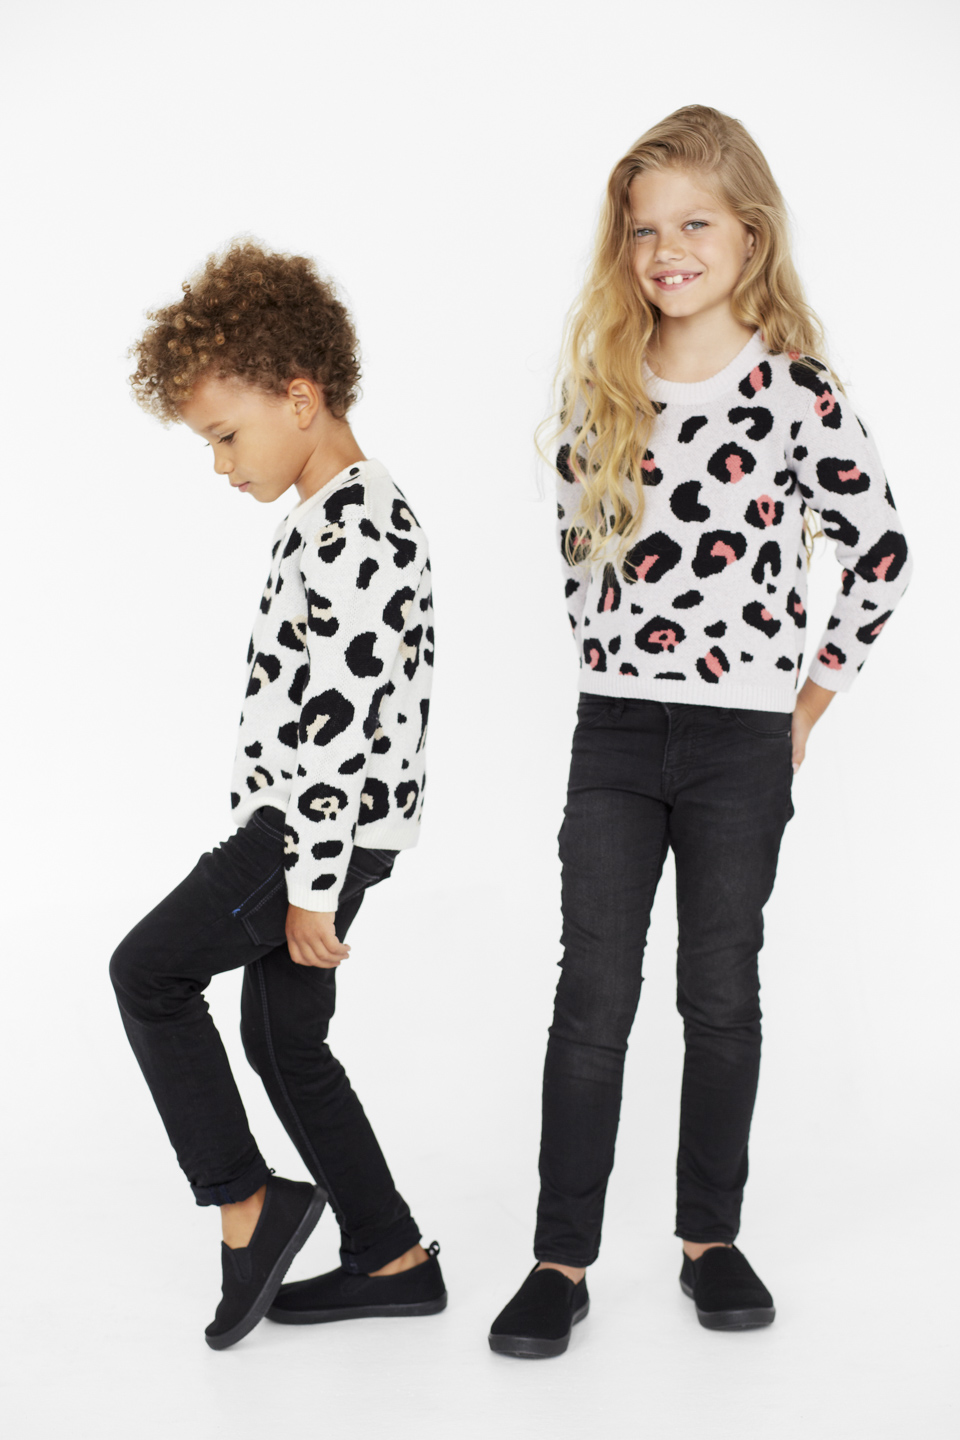 Atelier Child_FW15_The Leopard Sweaters_Hi Res.jpg